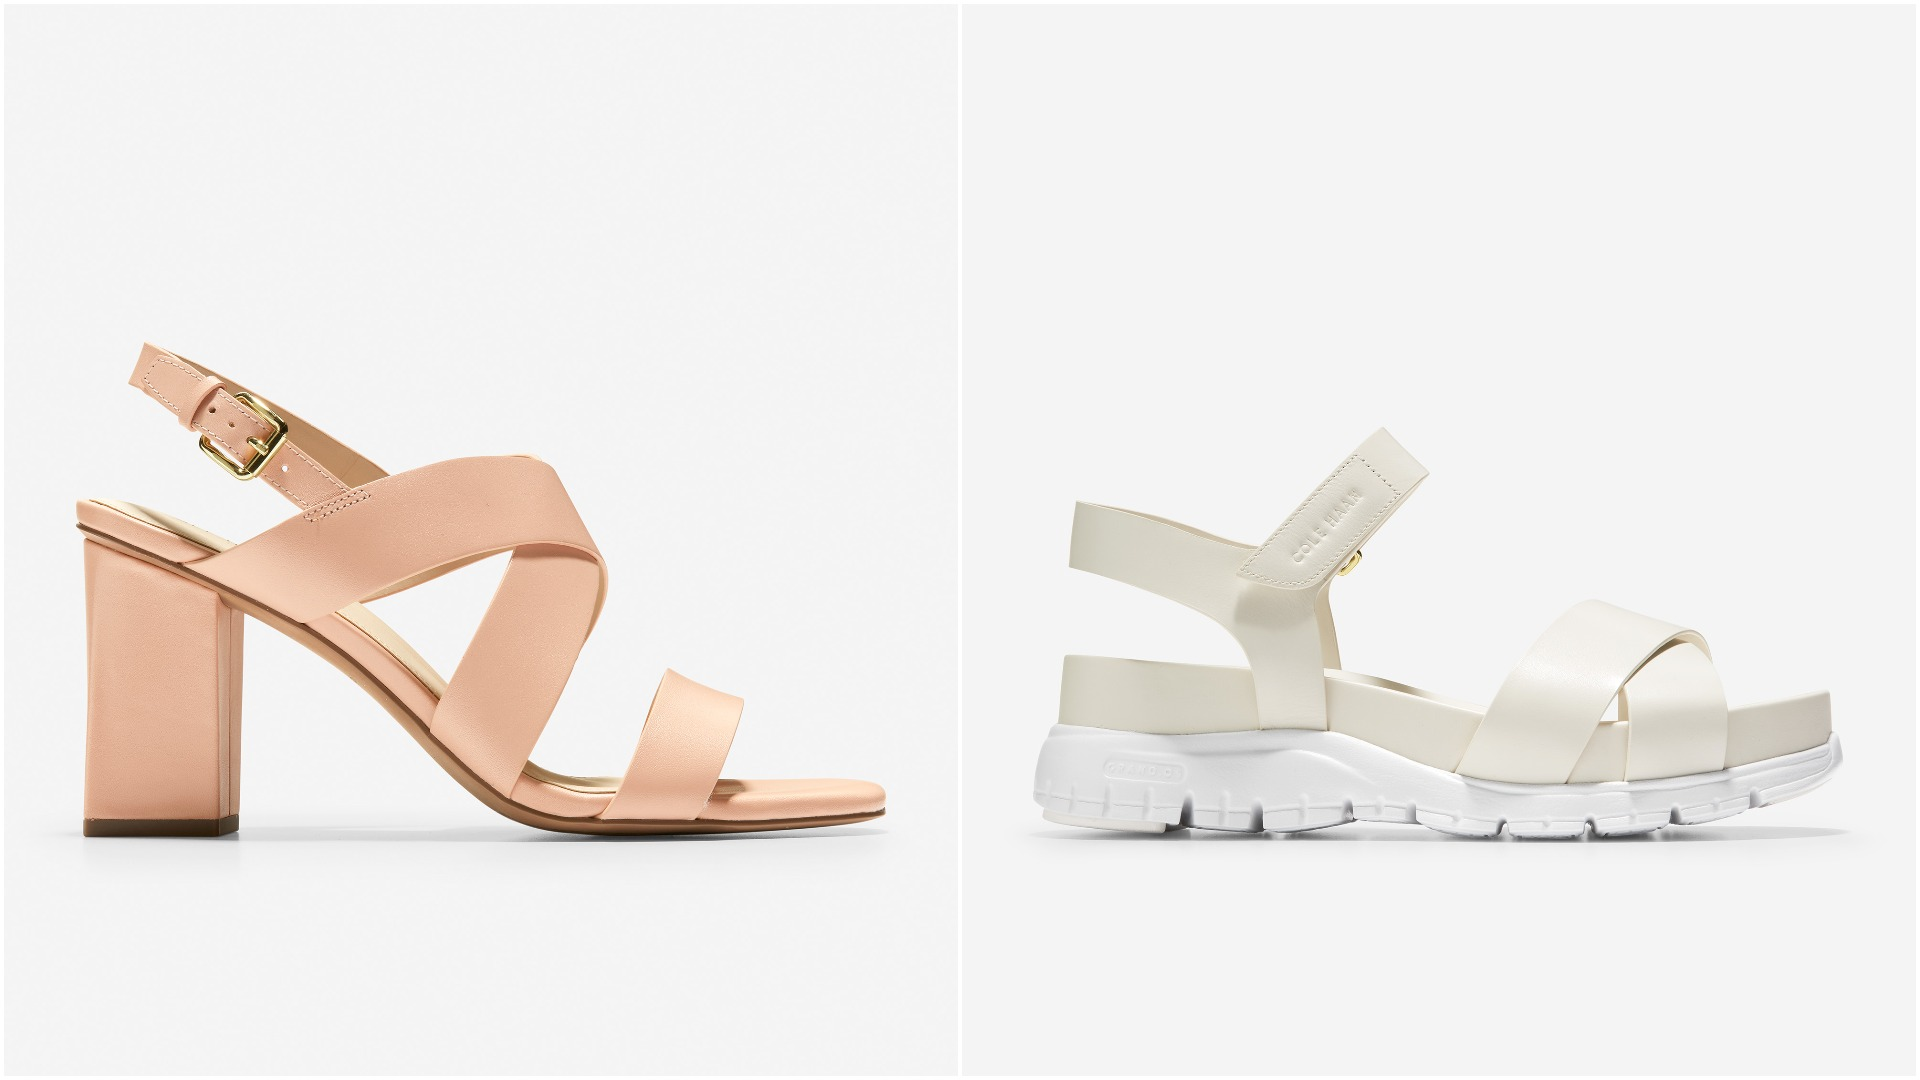 Tick, tock! You have 5 days left to save 30% on comfy Cole Haan sandals and sneakers for summer